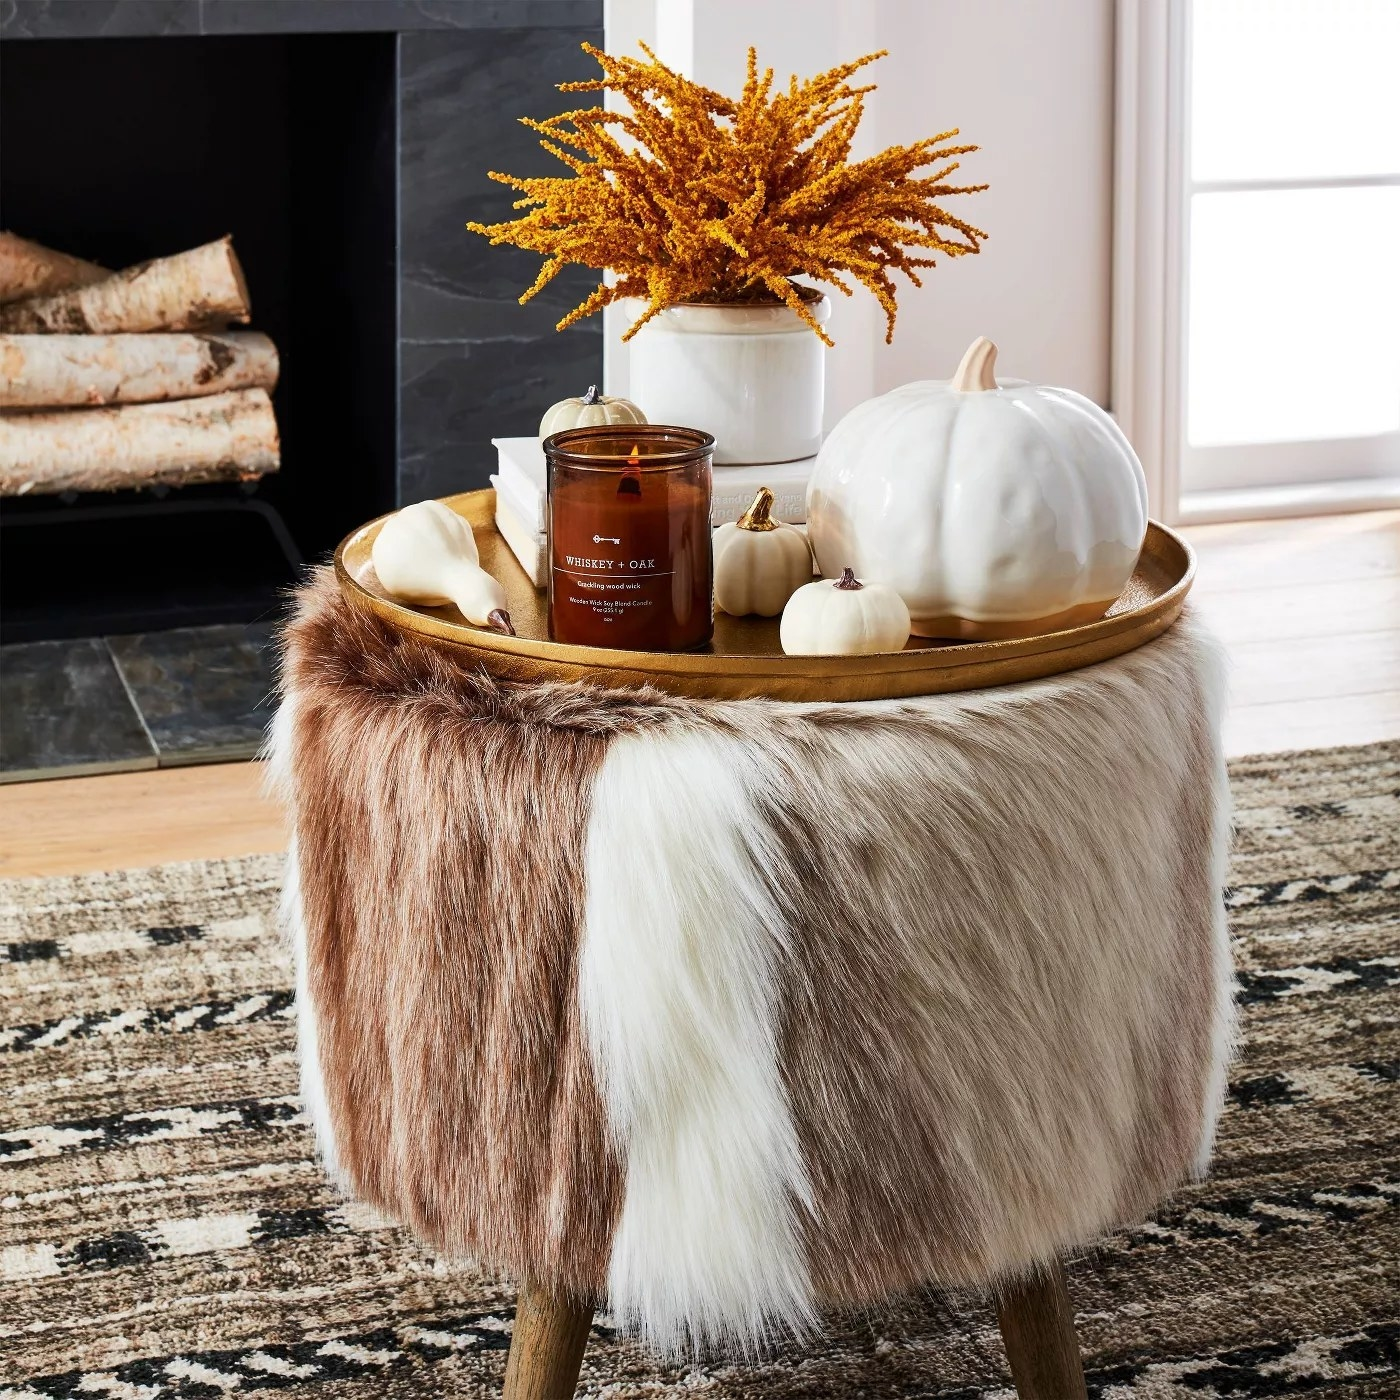 The faux fur ottoman functioning as a small table in a living room